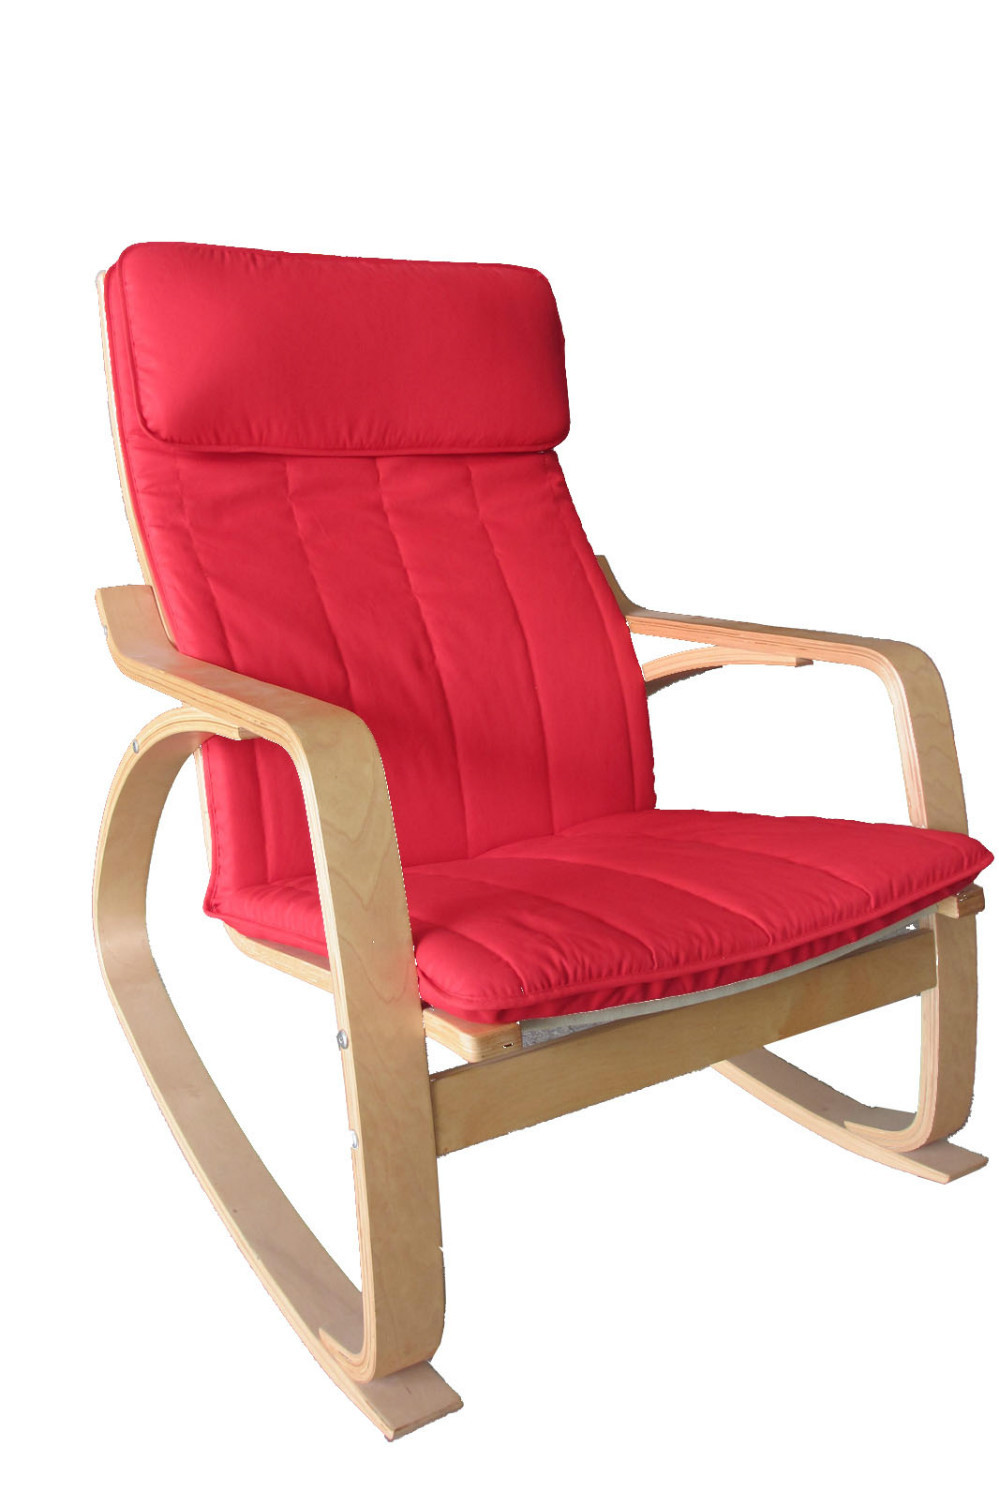 Happilar poang rocking chair bentwood with cushion natural frame and red - Red poang chair ...